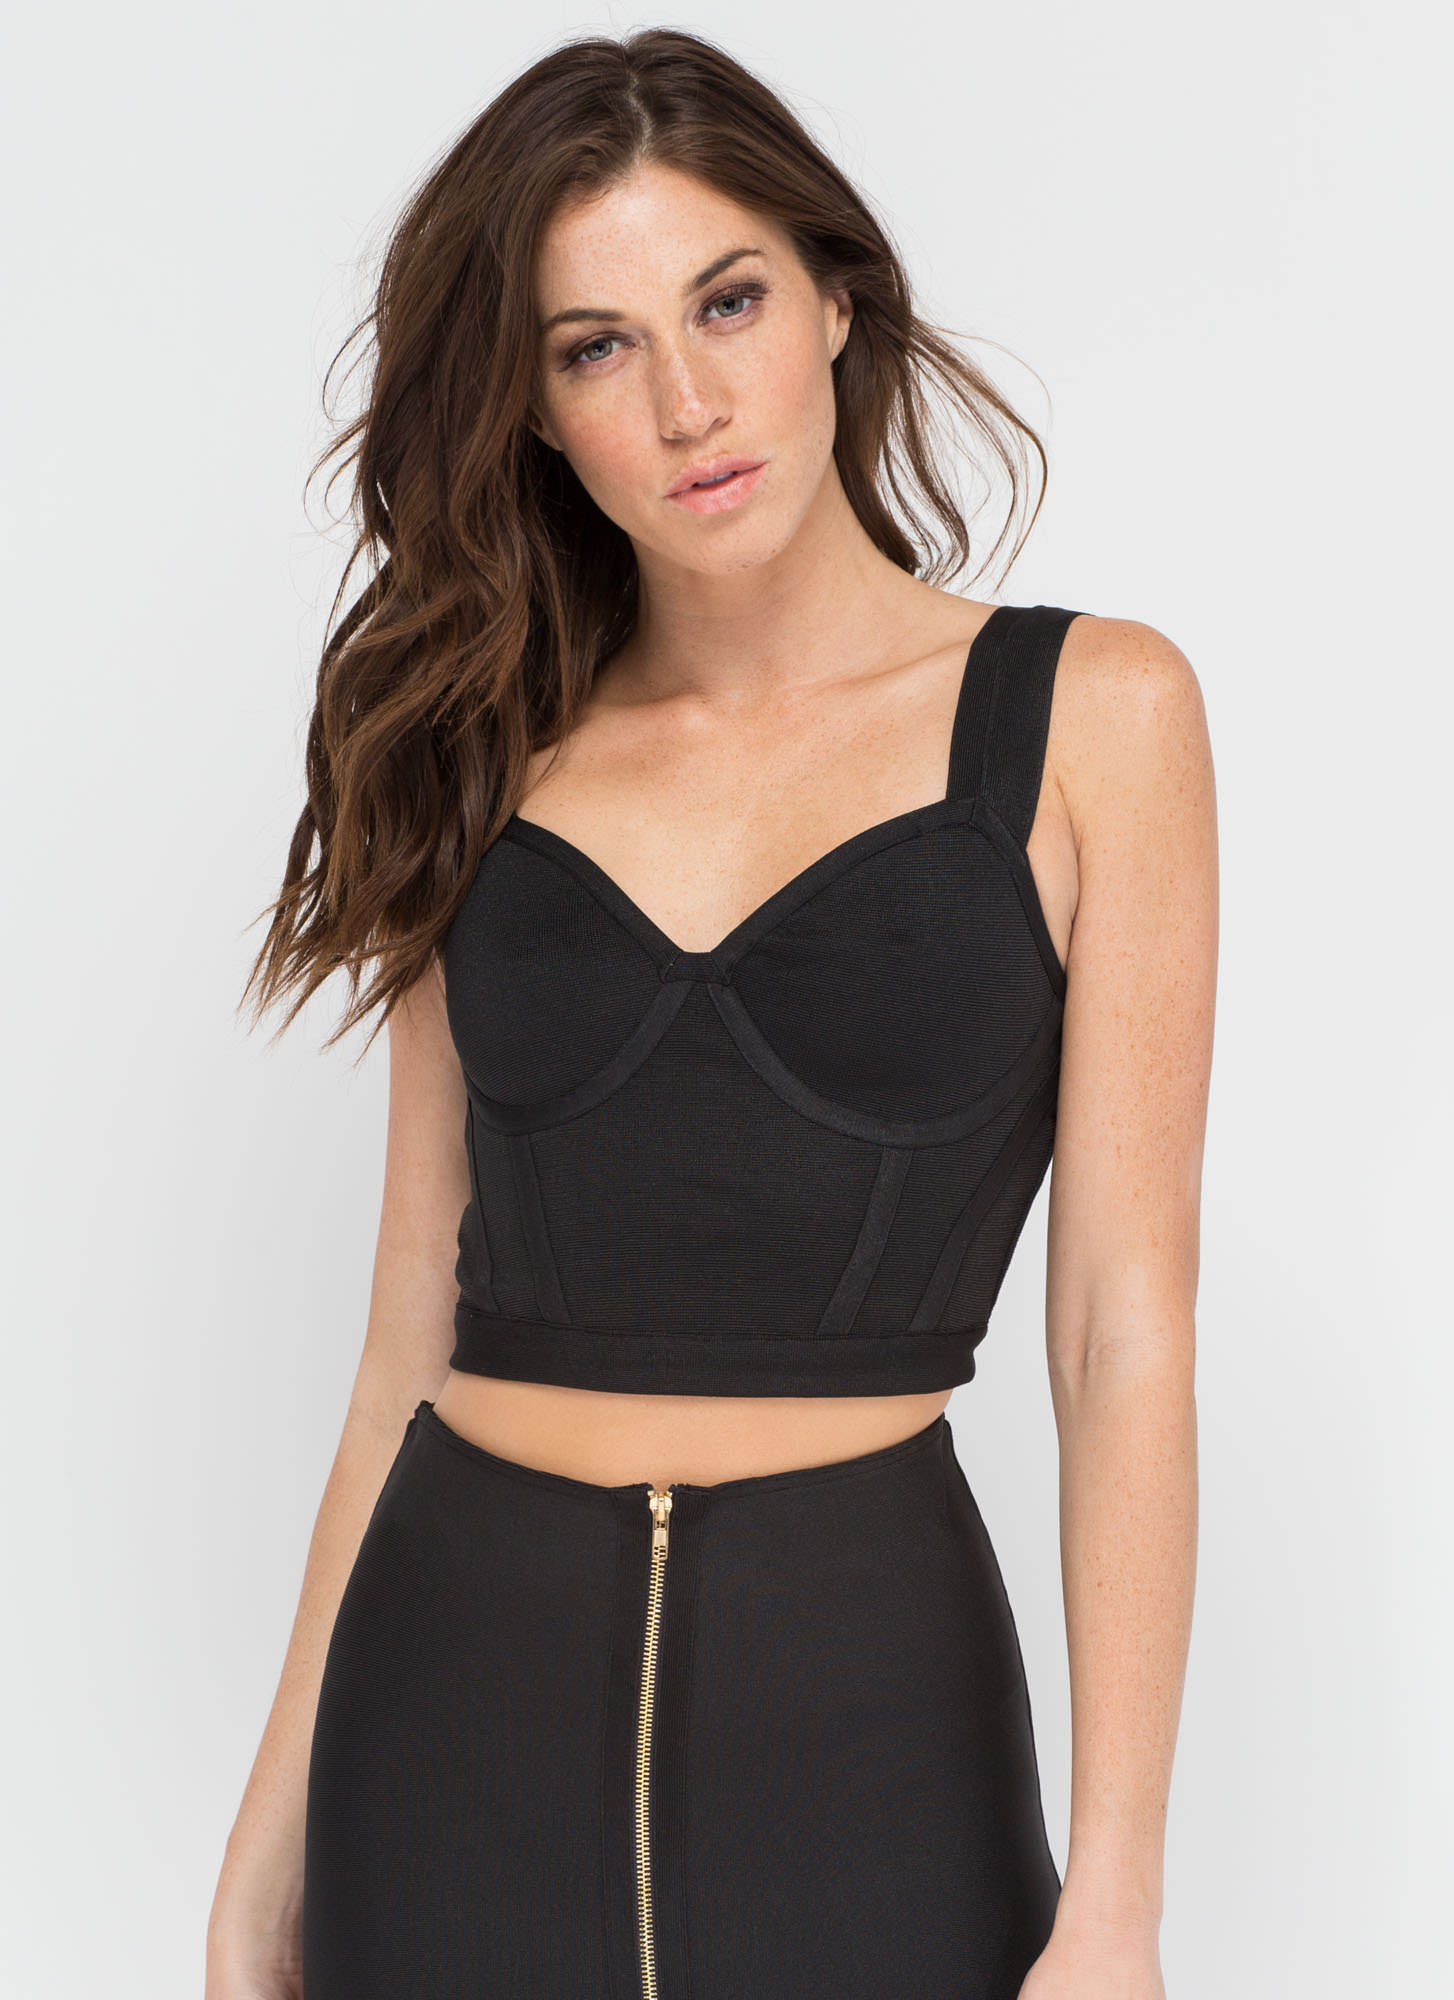 Give It A Bustier Bandage Black Crop Top